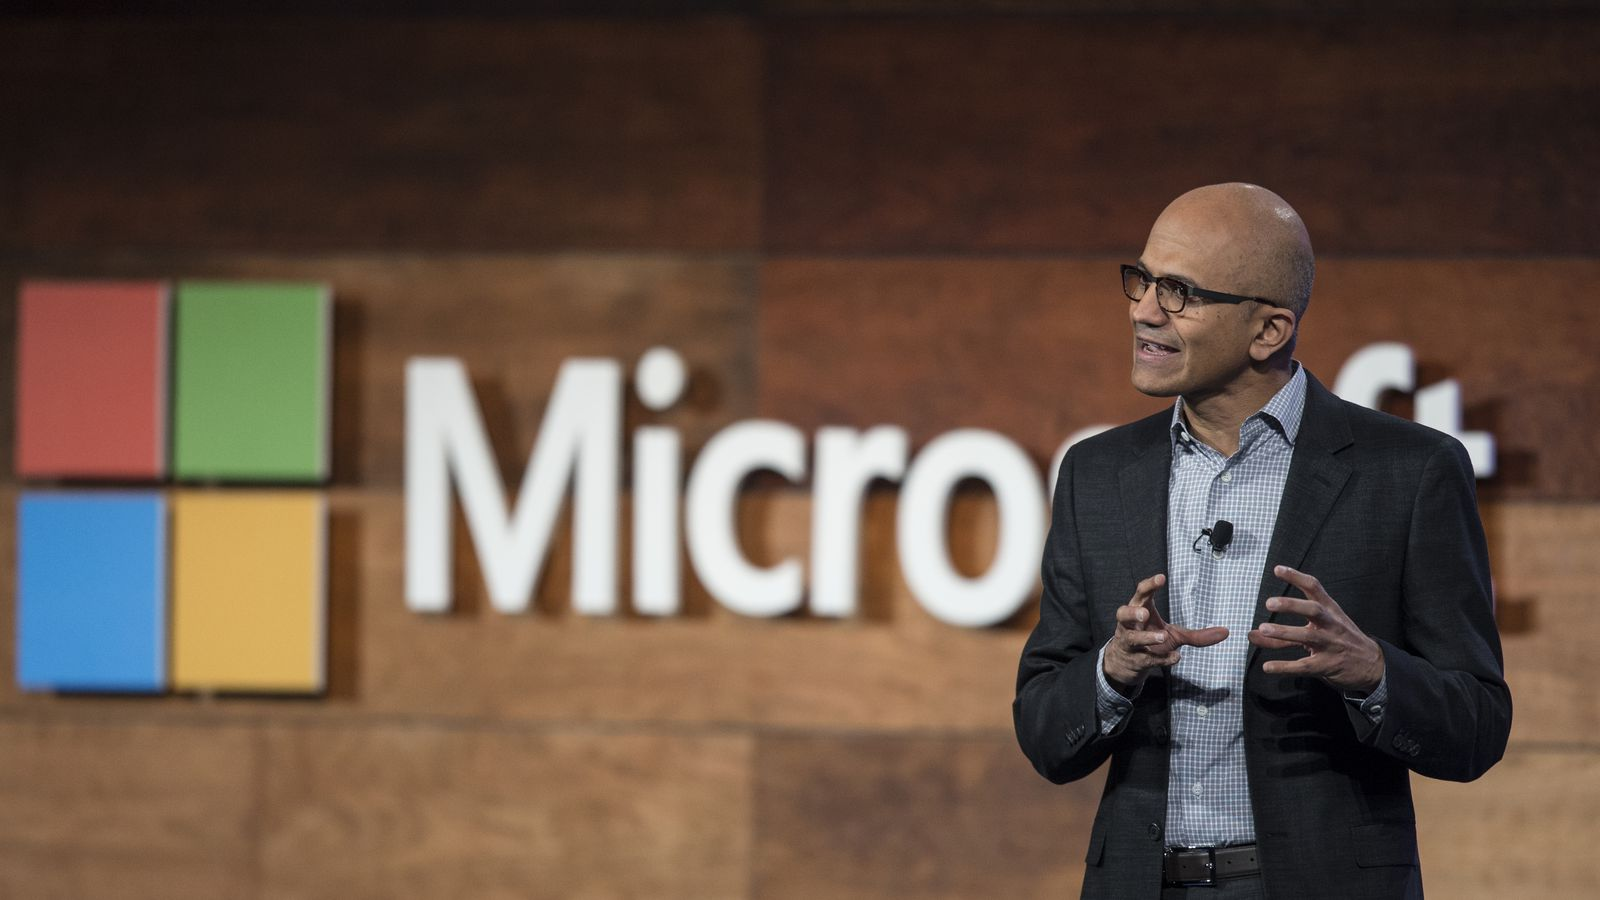 Microsoft's Azure Cloud Business Almost Doubled in the Past Year